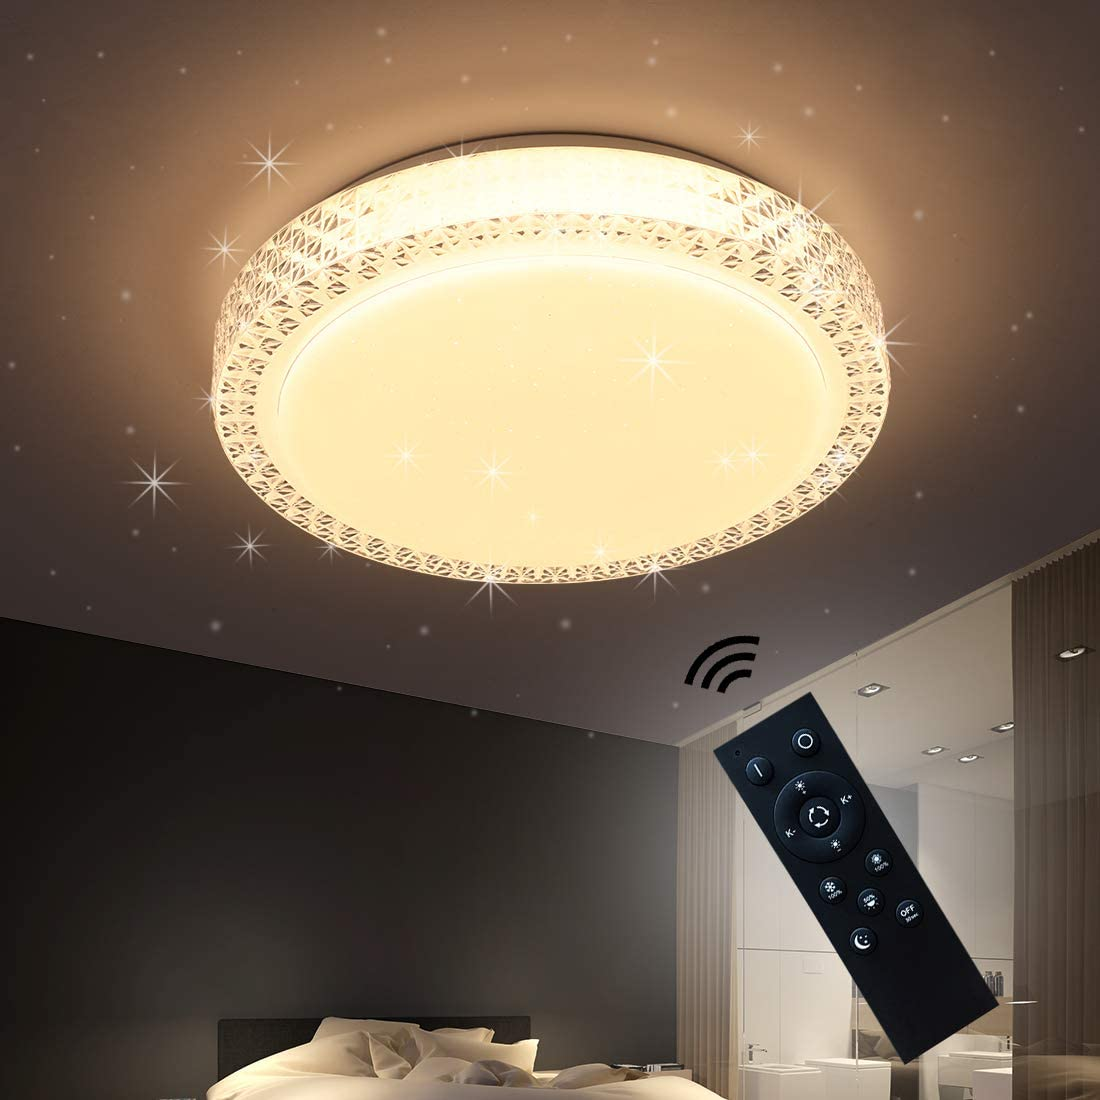 Dimmable LED Ceiling Light, LED Flush Mount Fixture with Remote Control, 15.7in Round LED Ceiling Lamp Without Flicker, for Living Room, Bedroom, 33W LED Ceiling Lamp,3000K-6000K